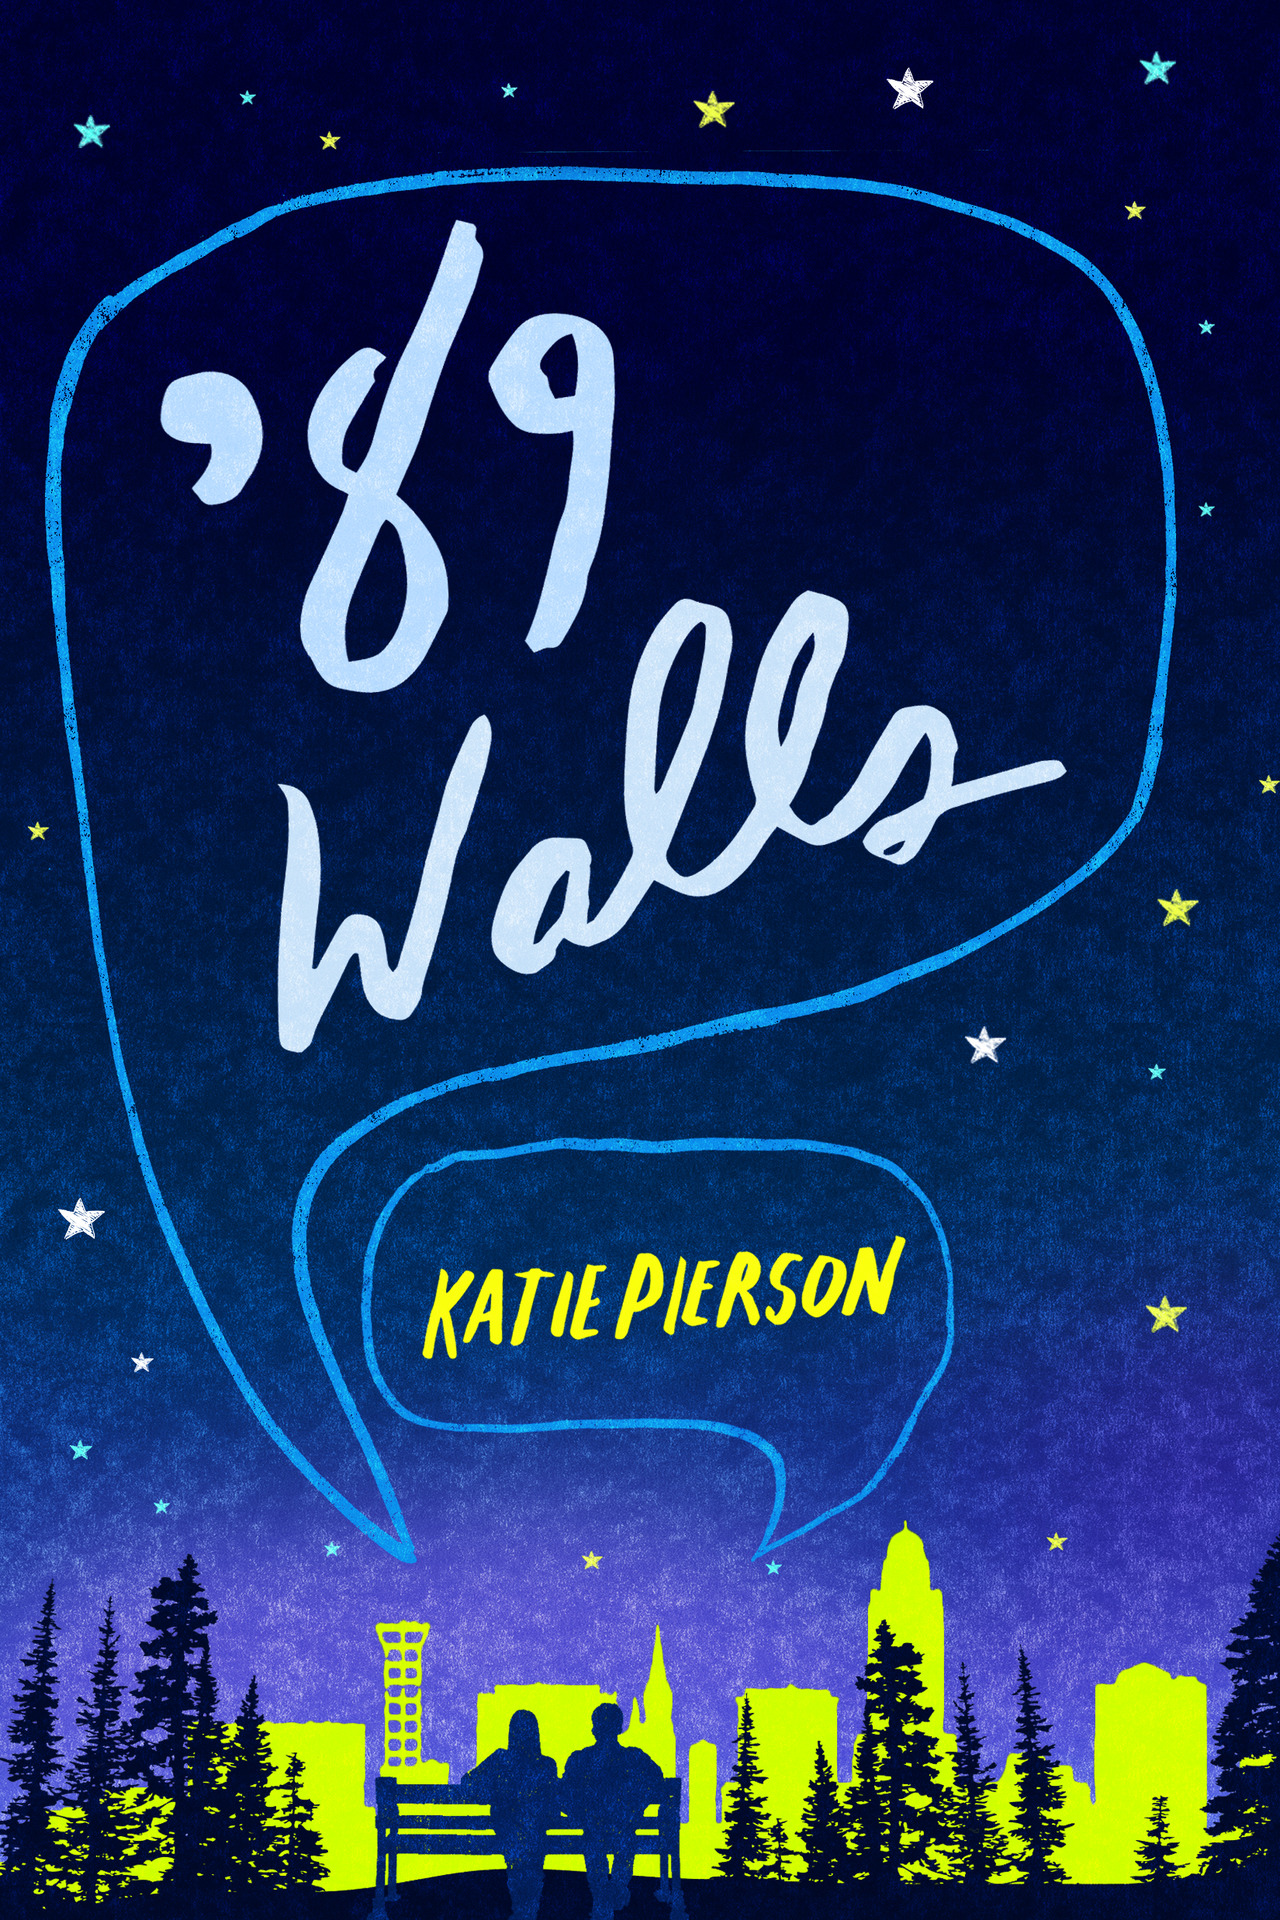 Katie Pierson: Five Things I Learned *After* Writing '89 Walls